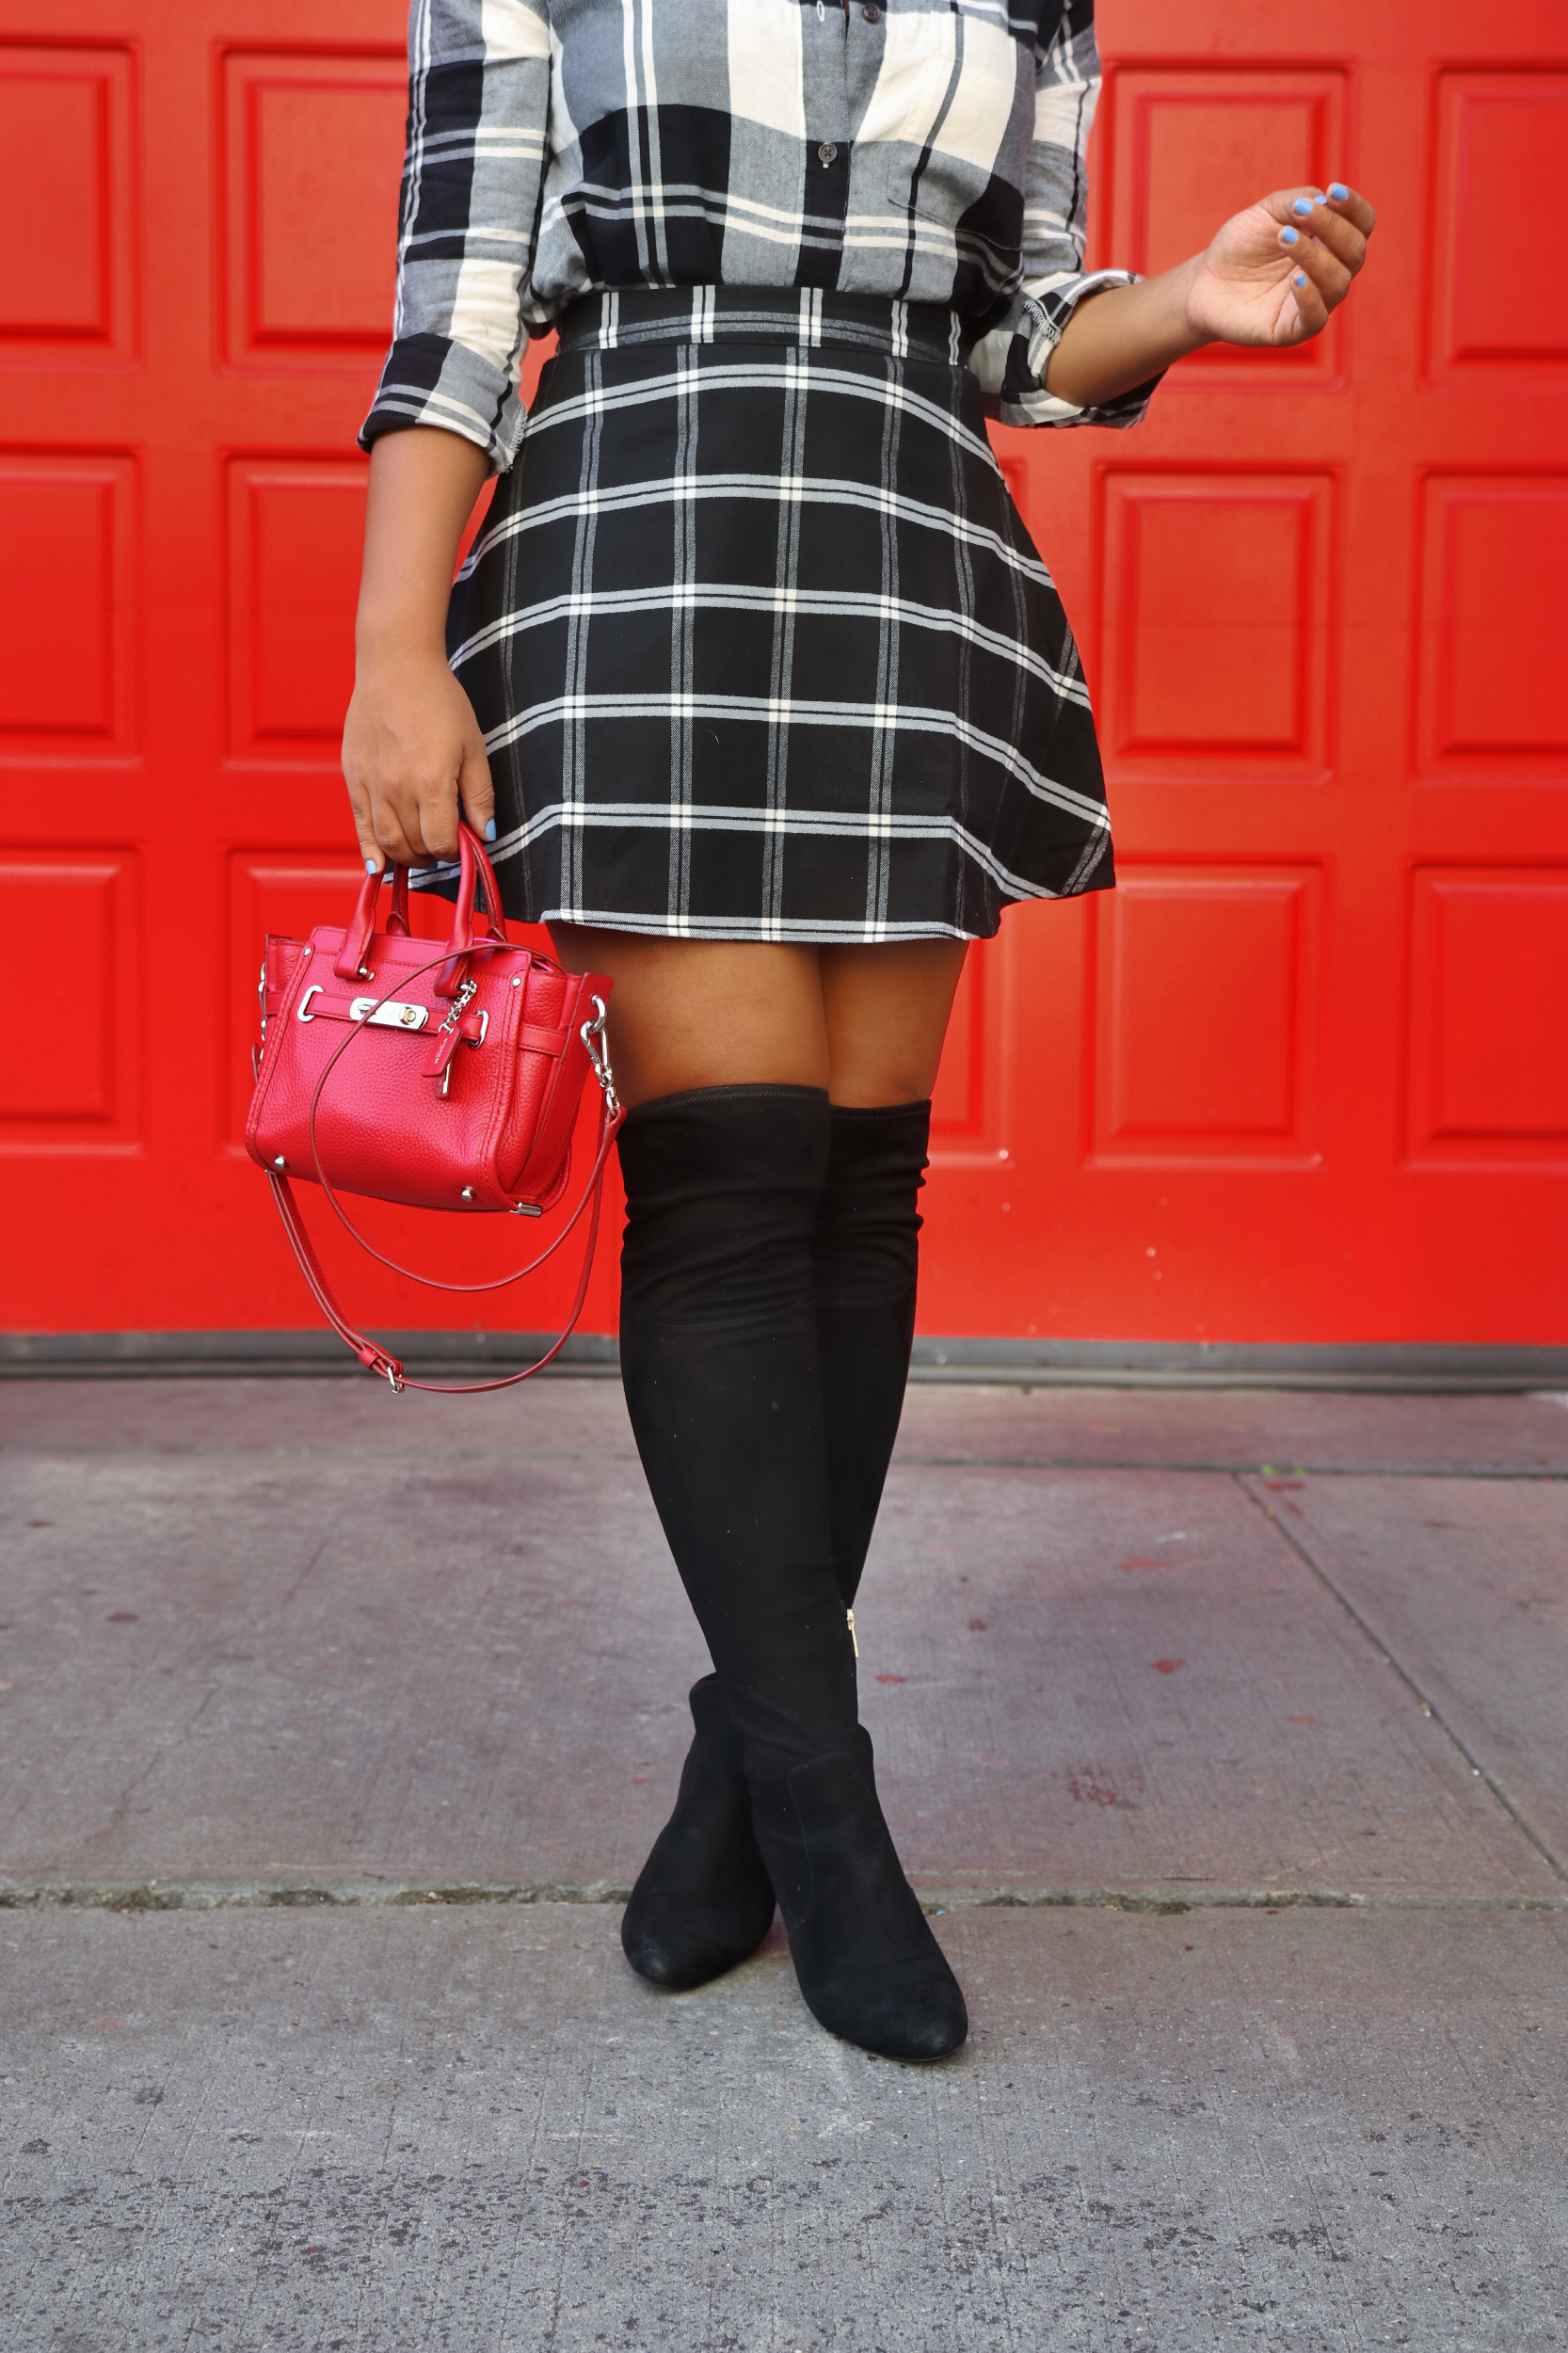 Over The Knee Boots! Fall style by Color Me Courtney (@colormecourtney) // Black & white that's not borring for fall #plaid #overthekneeboots #otkboot #patternmixing #blackandwhite